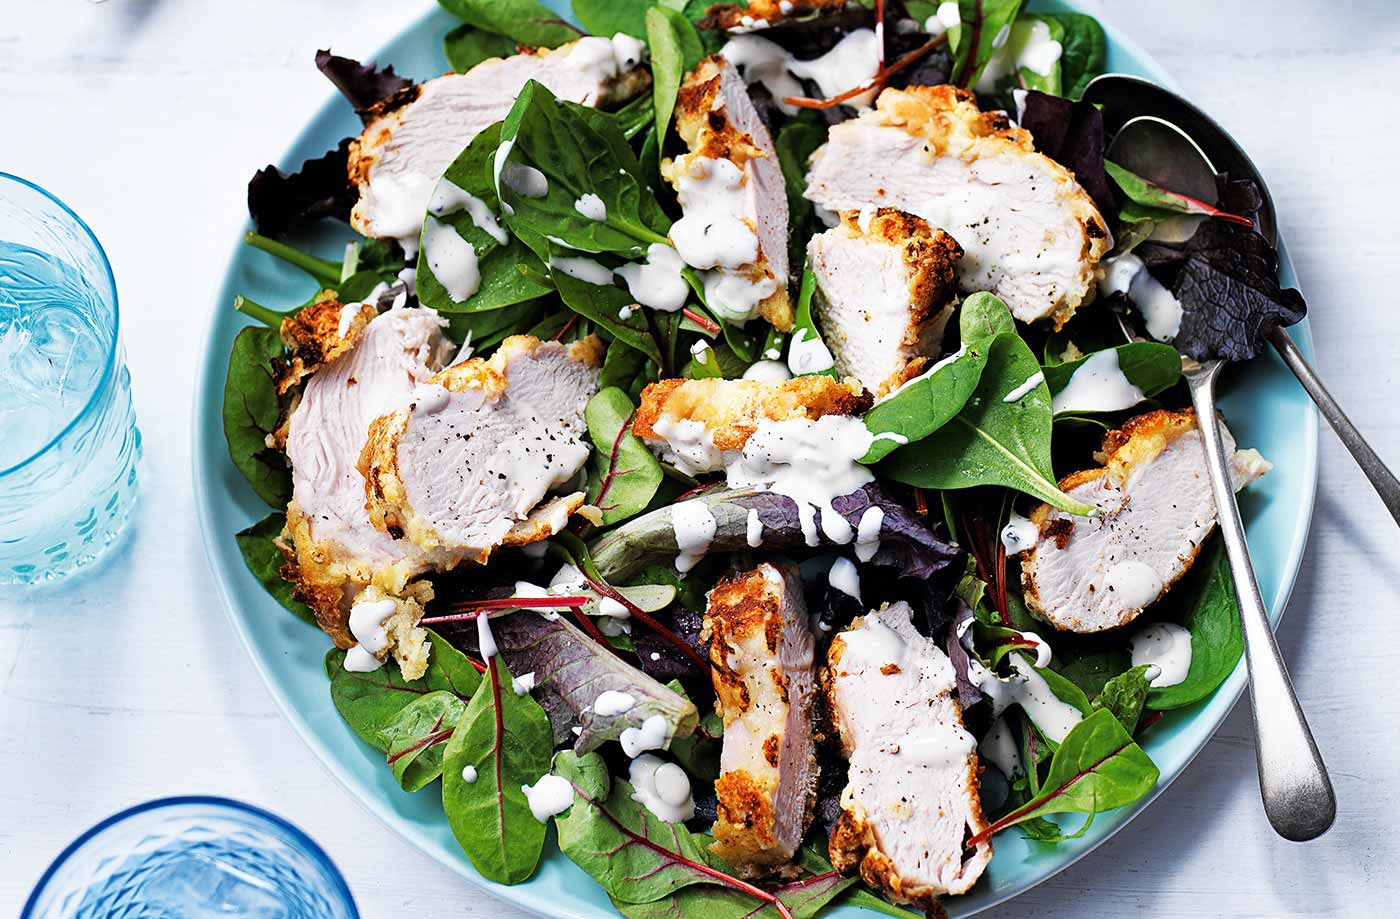 Southern-fried chicken salad recipe